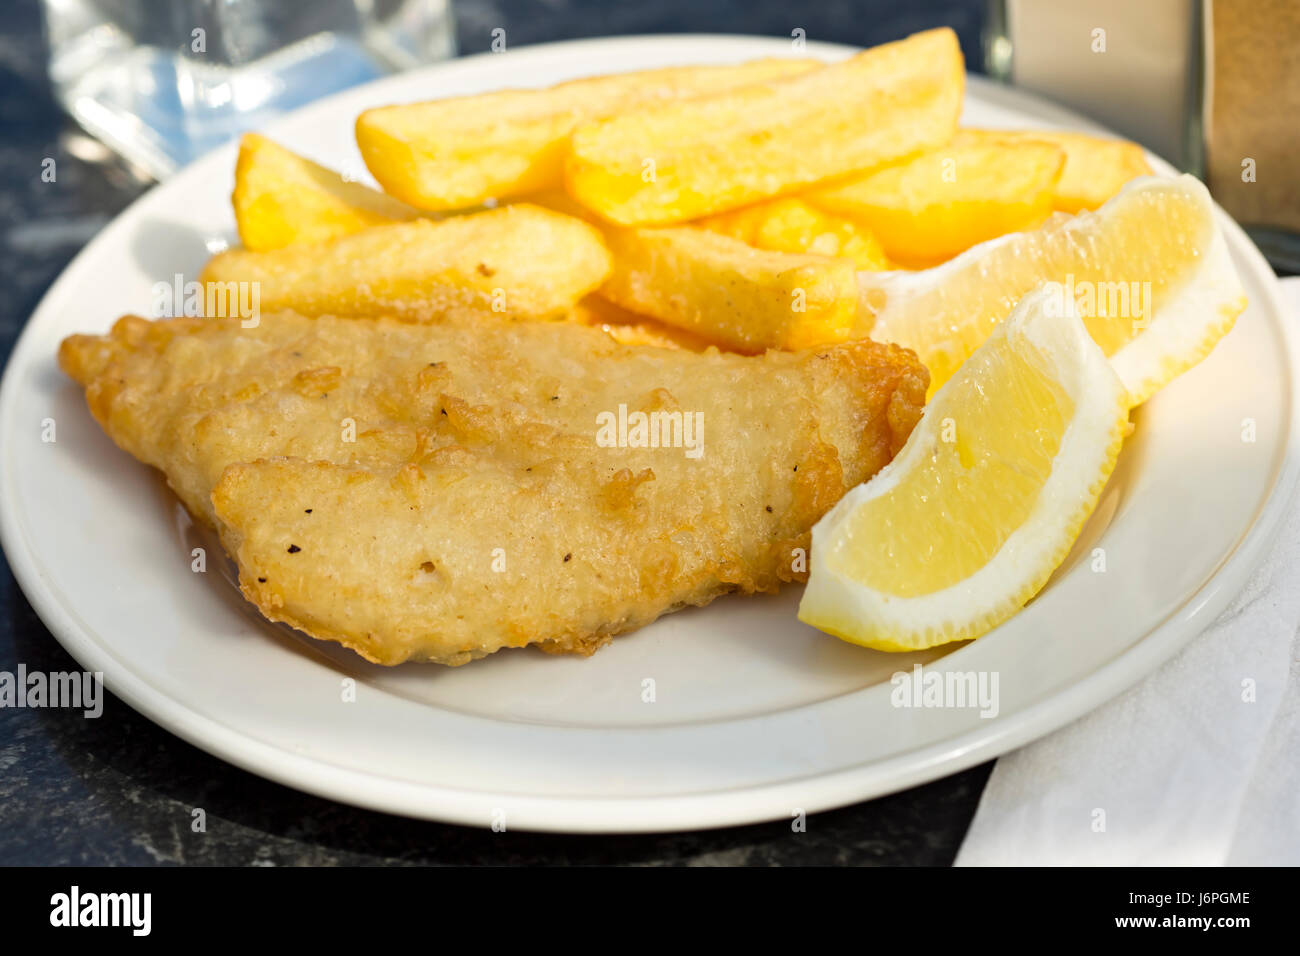 Fish and chips with lemon - Stock Image